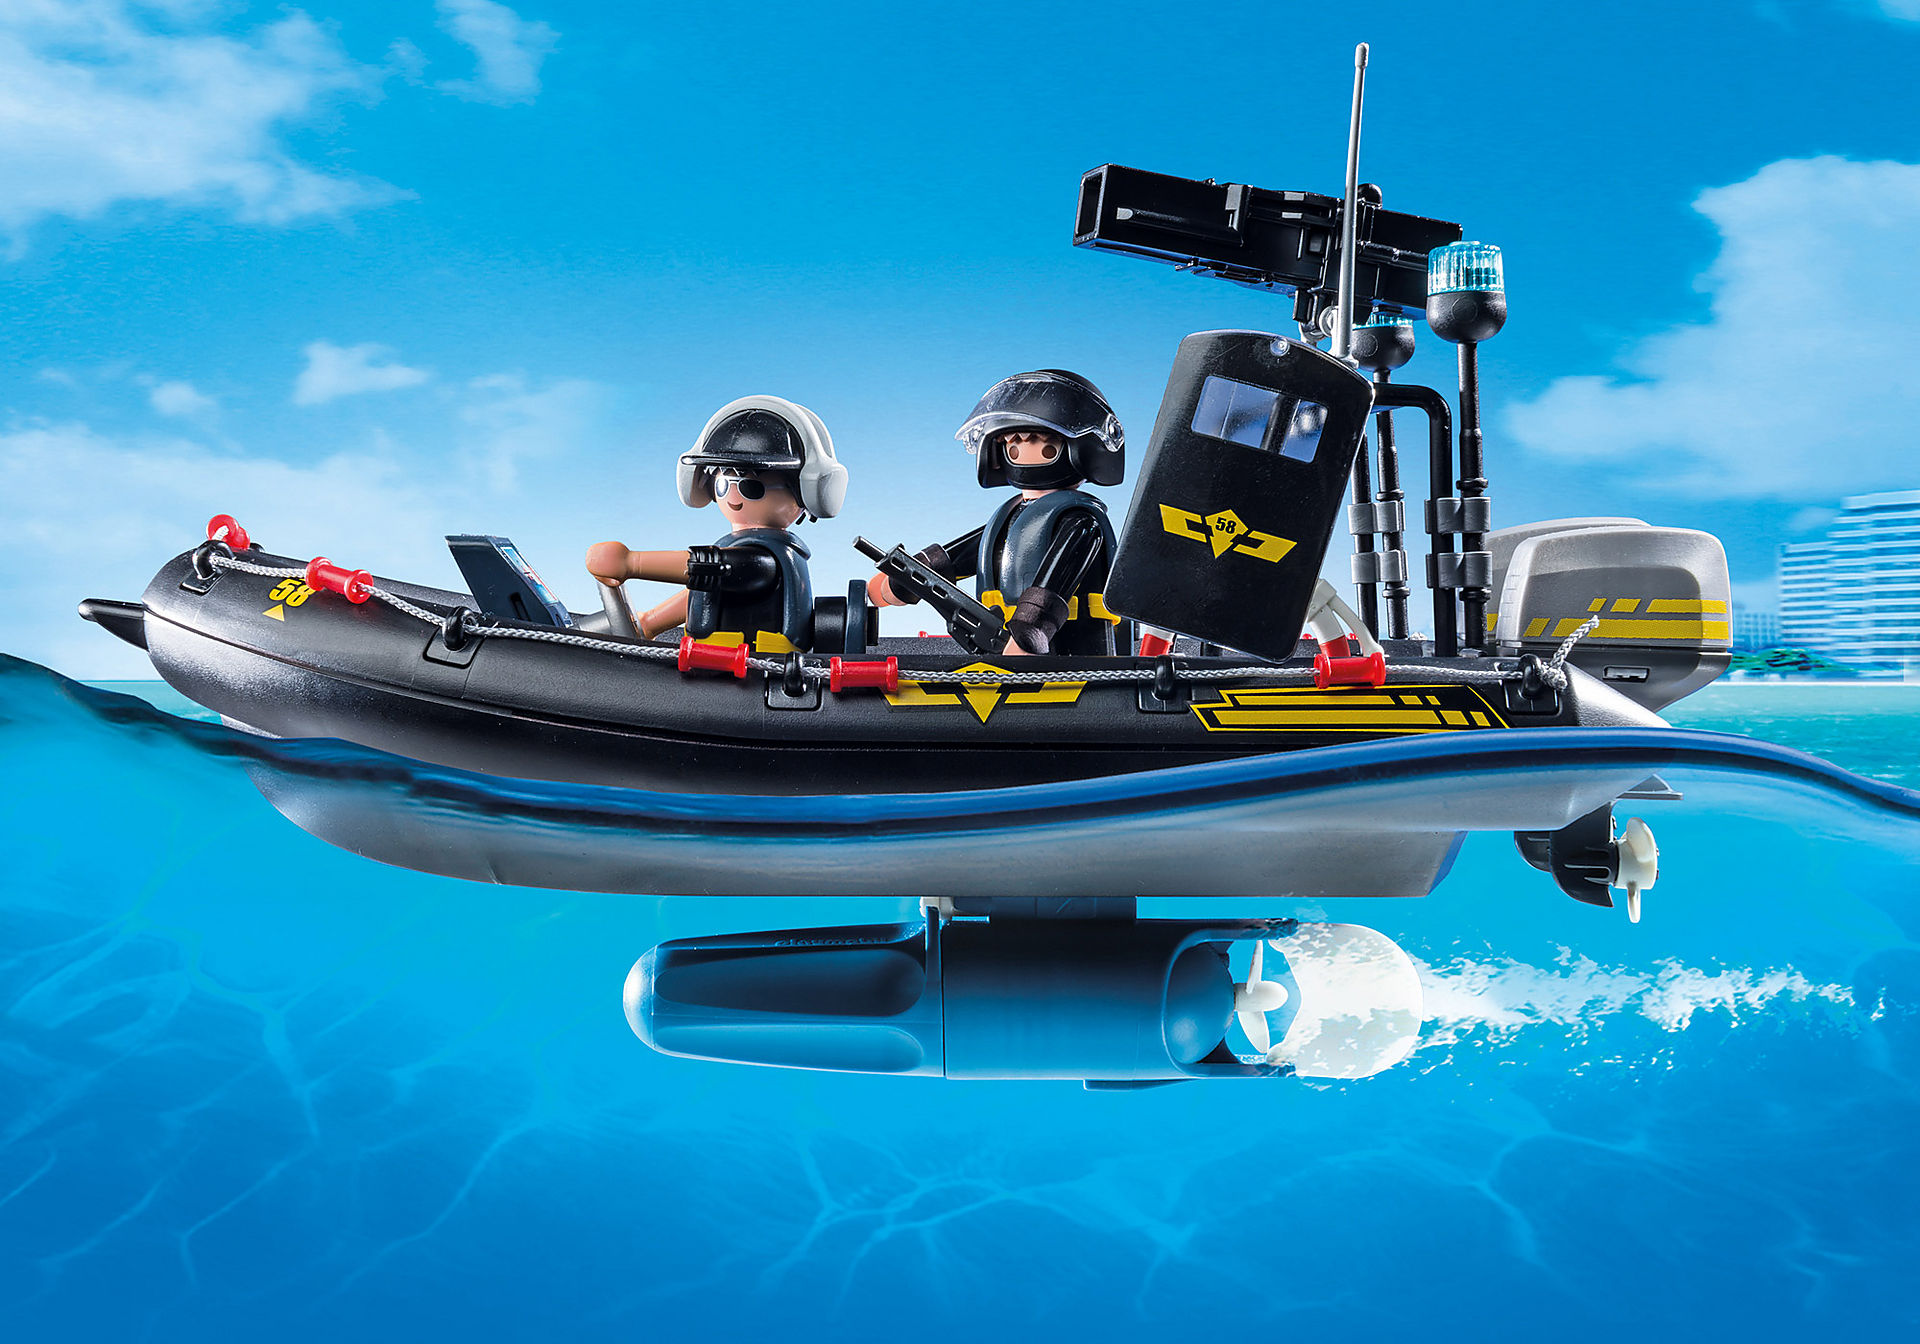 http://media.playmobil.com/i/playmobil/9362_product_extra2/SEK-Schlauchboot